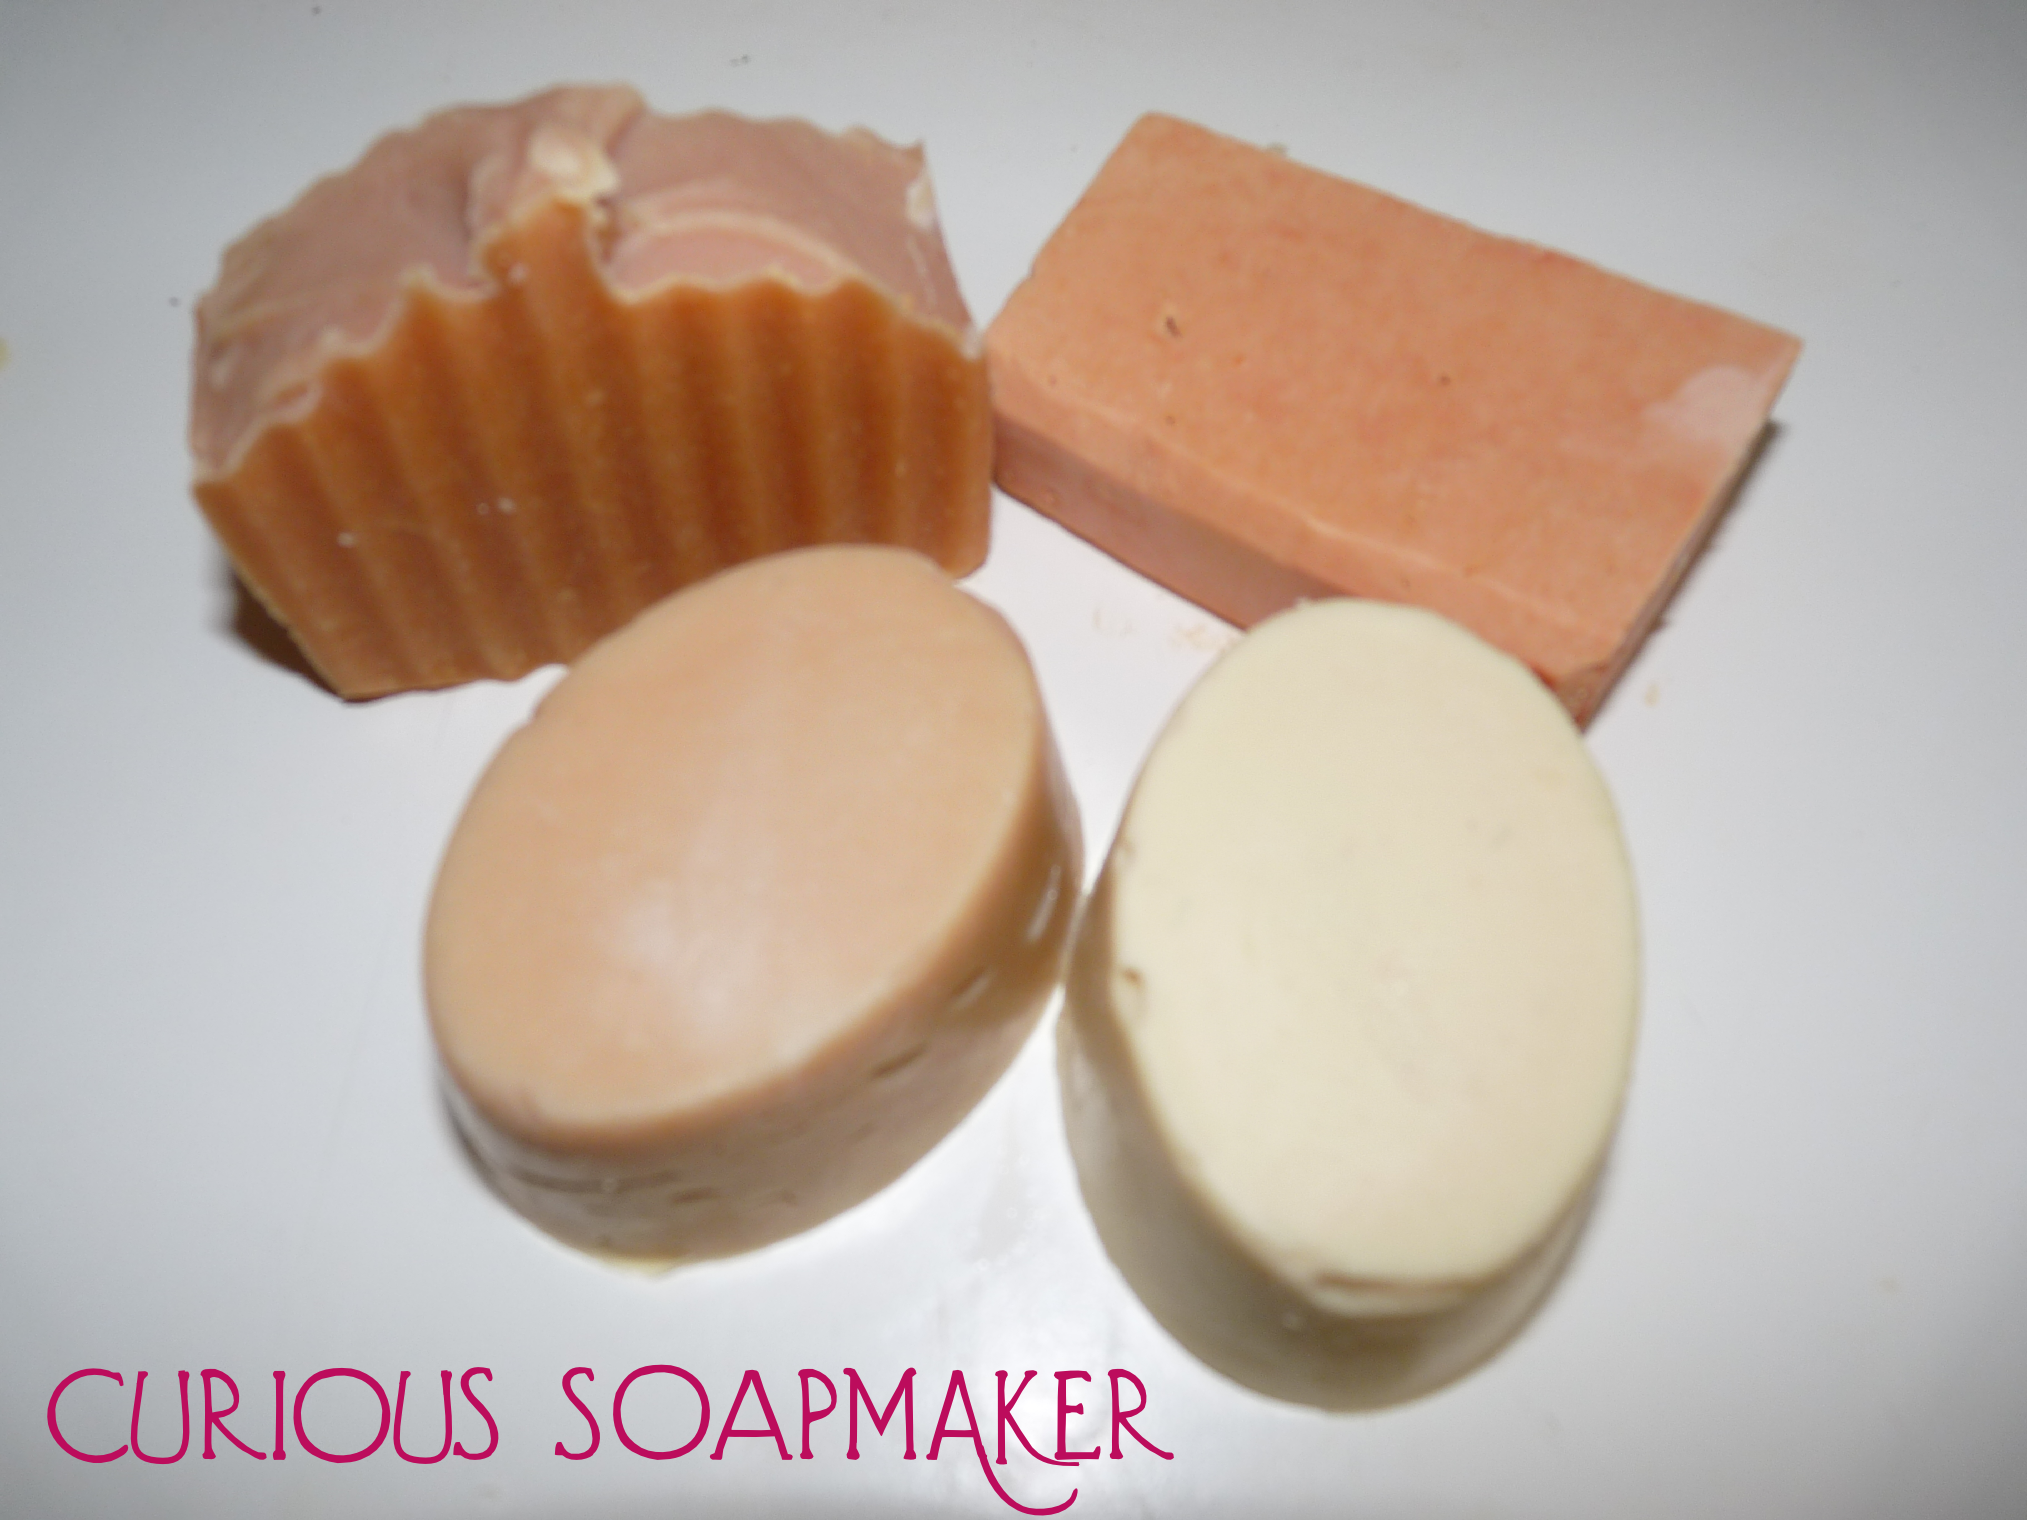 Goat milk soap recipe - and why it is